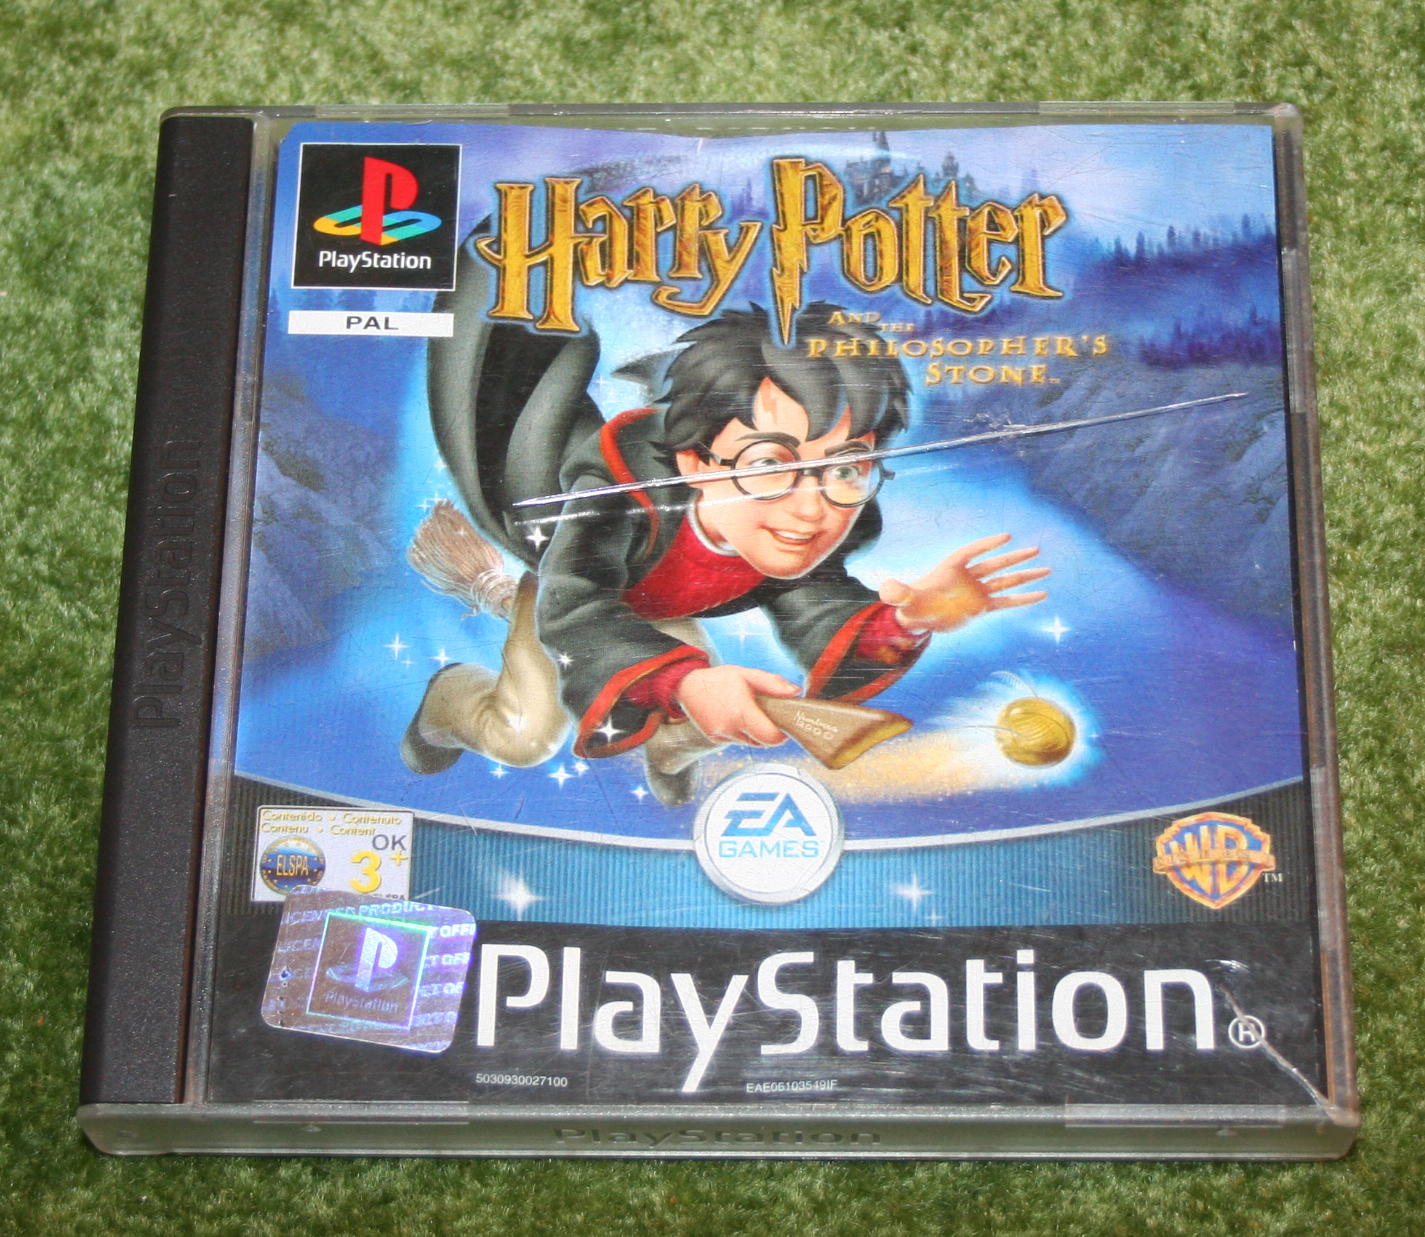 Harry Potter Playstation Game 2001